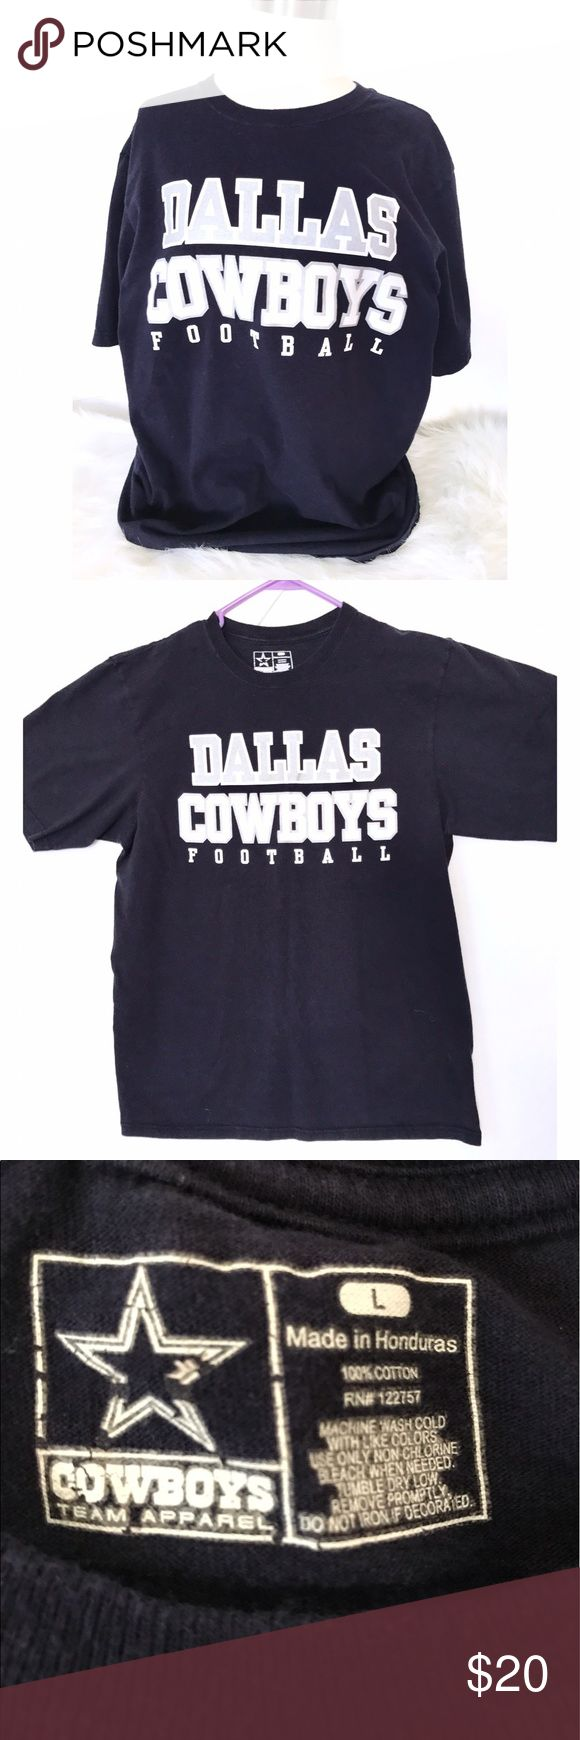 Dallas cowboys tee ⭐️ Rest condition Dallas cow boys tee. Ye writing has not cracks and still shines 😆 *please don't hesitate to ask questions* *reasonable offers considered* *gift included* Shirts Tees - Short Sleeve